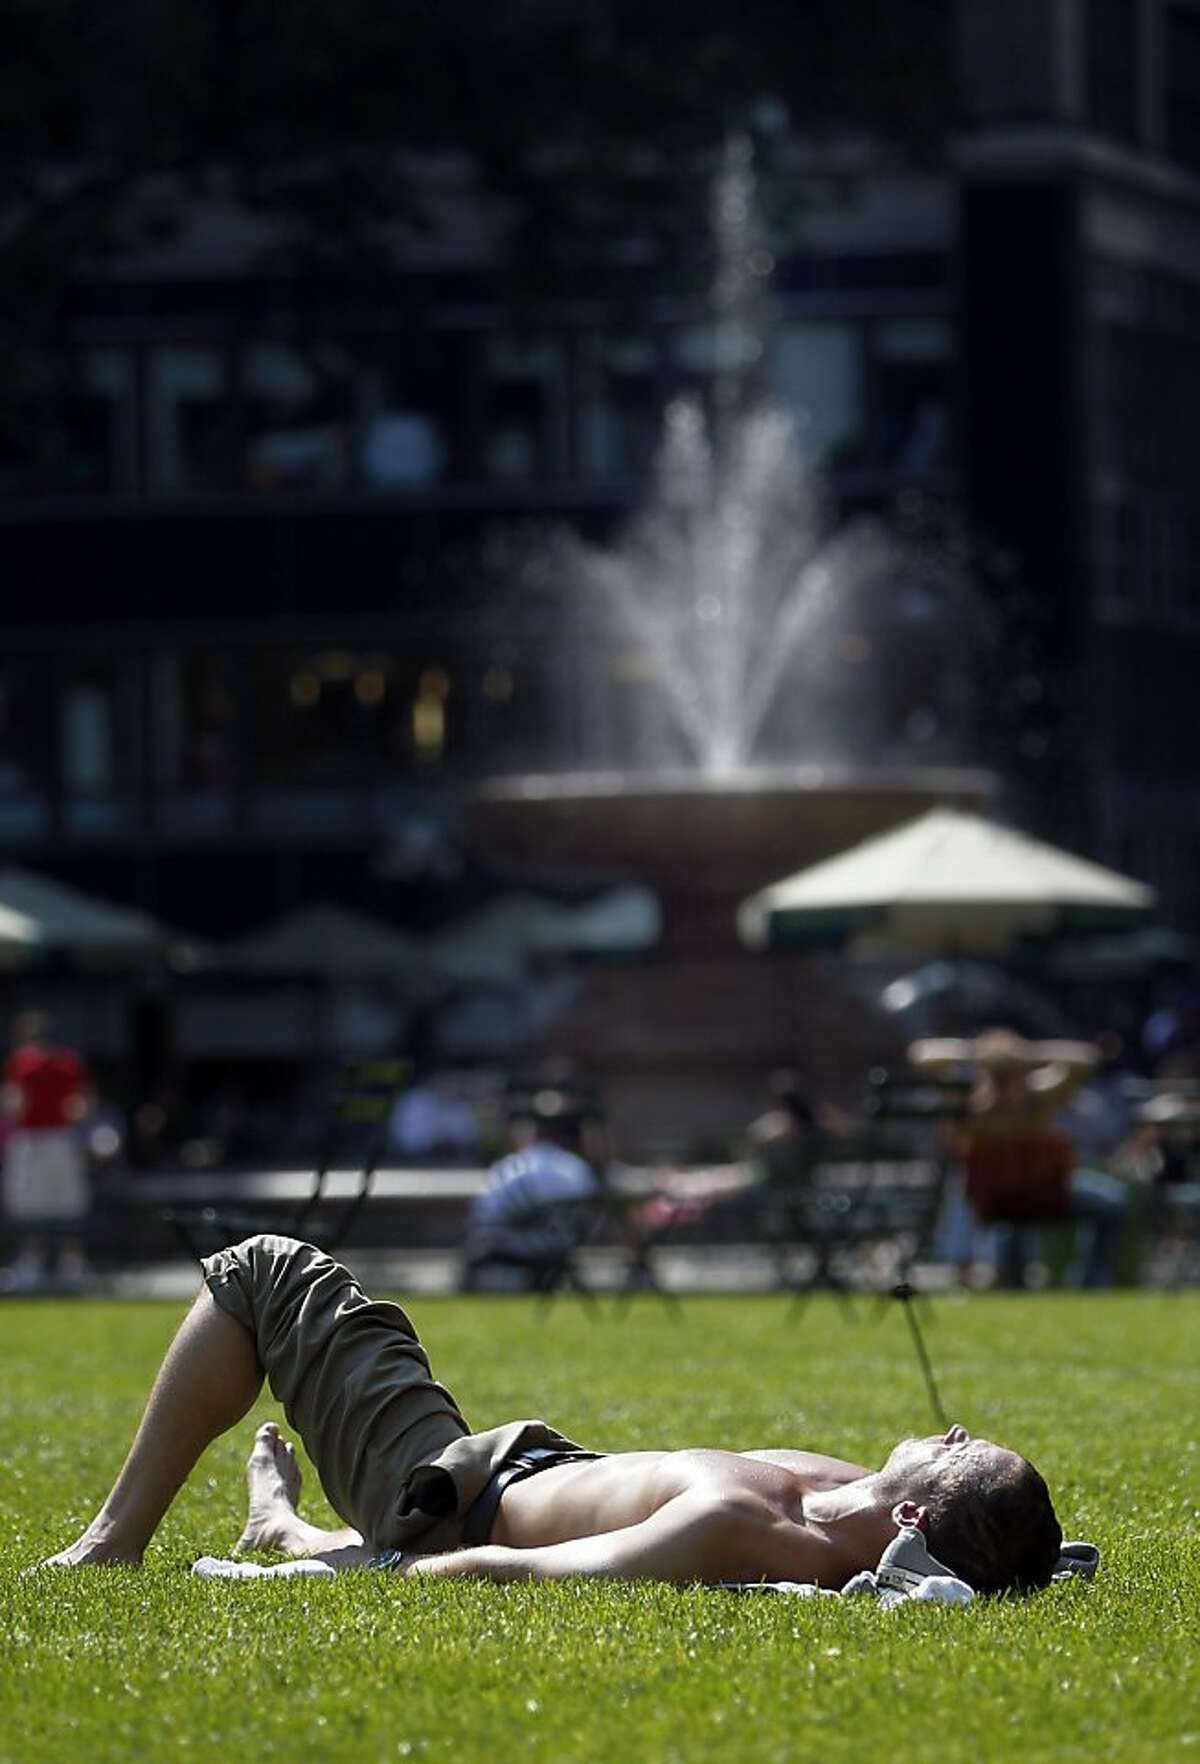 A sunbather basks in the hot sun of Bryant Park, Wednesday, June 8, 2011 in New York. Temperatures are expected to rise well in to the 90's Wednesday as New York braces for a possible heat wave, its first of the season.